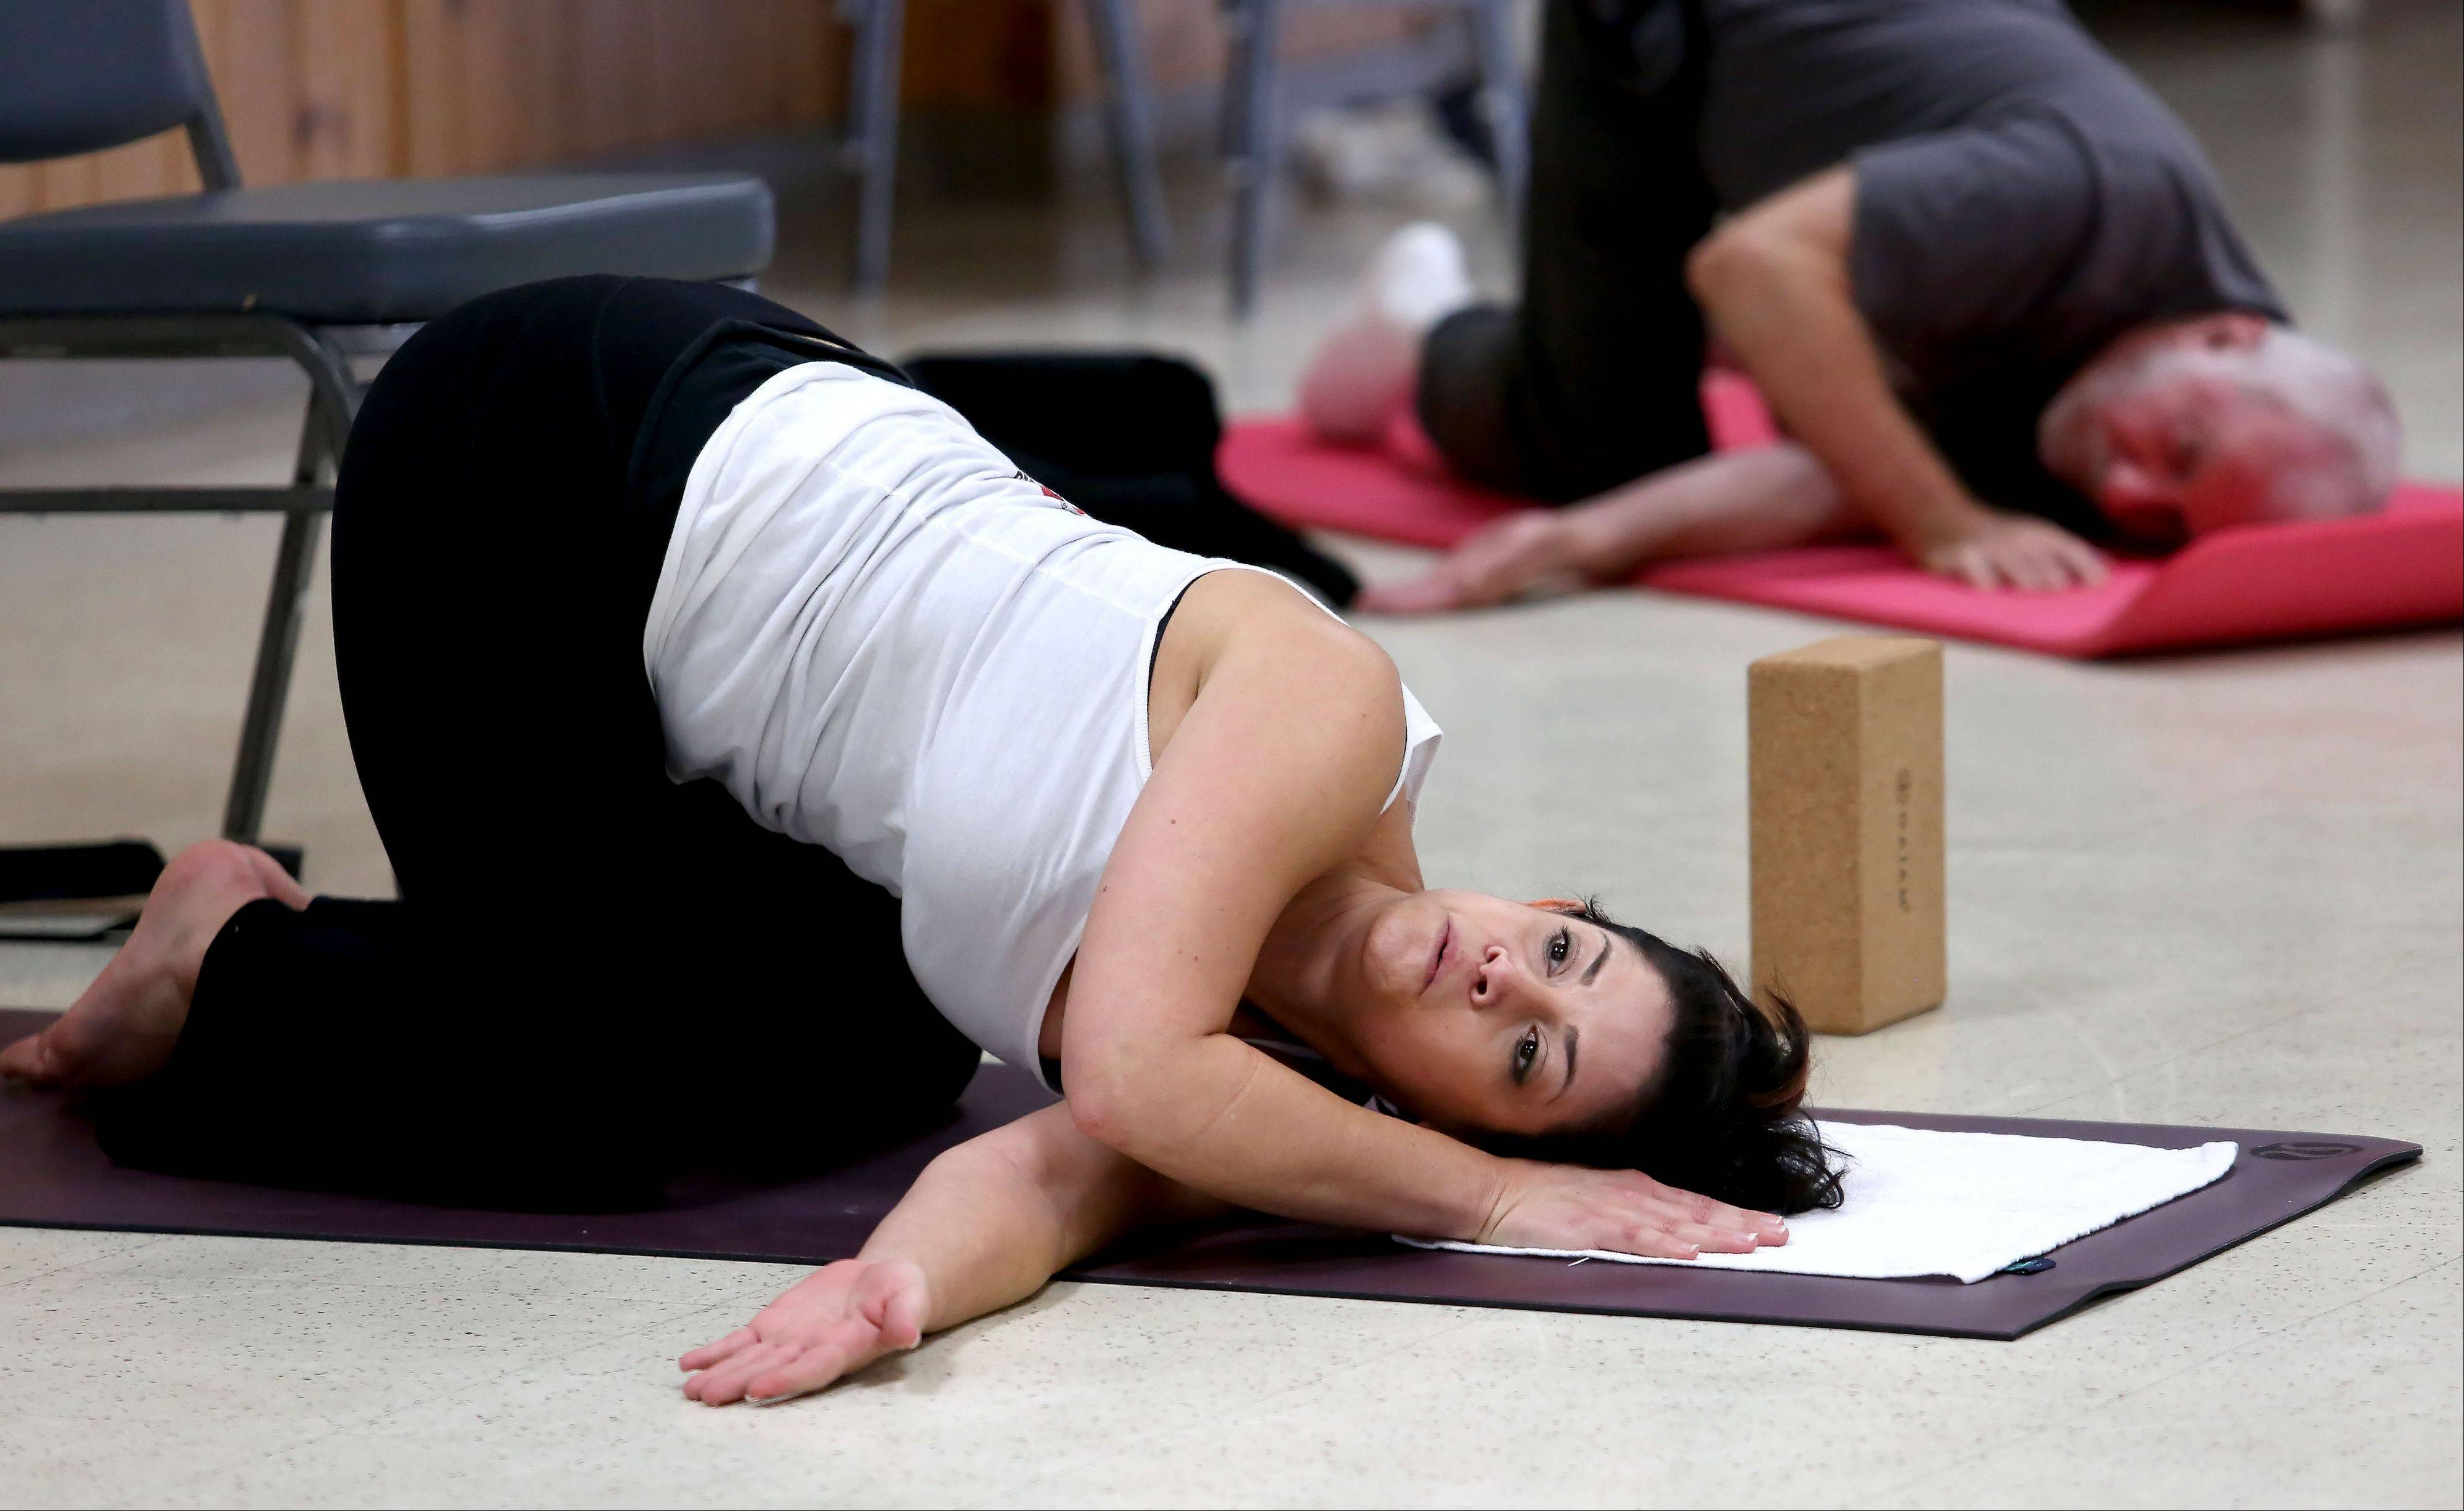 Dana Fish of Naperville teaches a yoga class at Judd Kendall VFW Post 3873 in Naperville. She recently started offering yoga classes for veterans through Connected Warriors, a Florida-based nonprofit that makes the physical and emotional benefits of yoga available to those who have served.